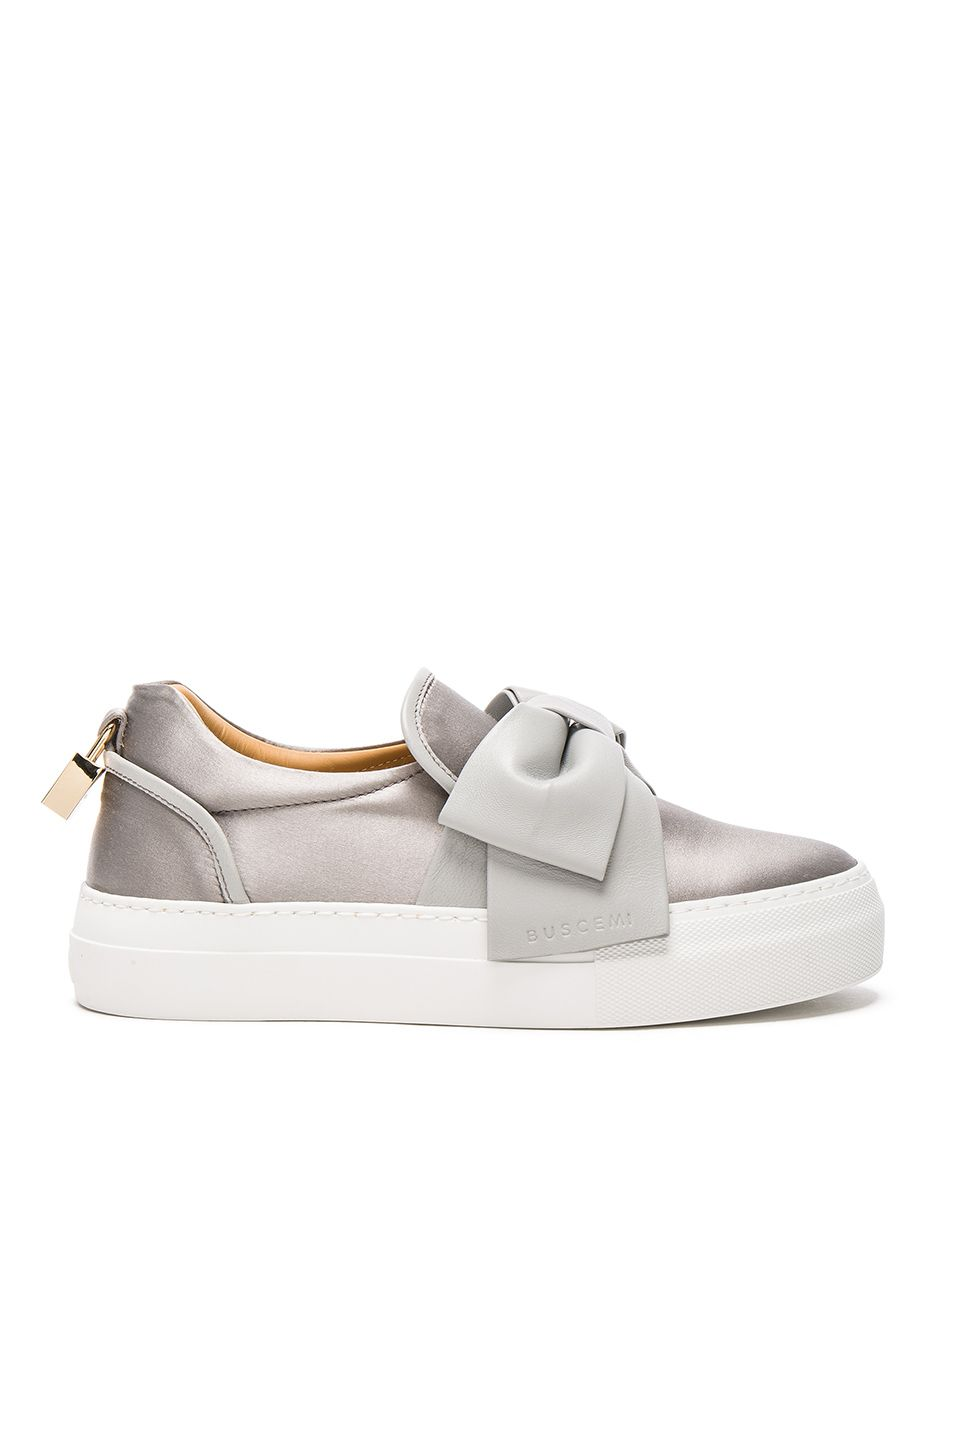 2c669237e7f BUSCEMI 40MM Bow Satin Sneakers.  buscemi  shoes